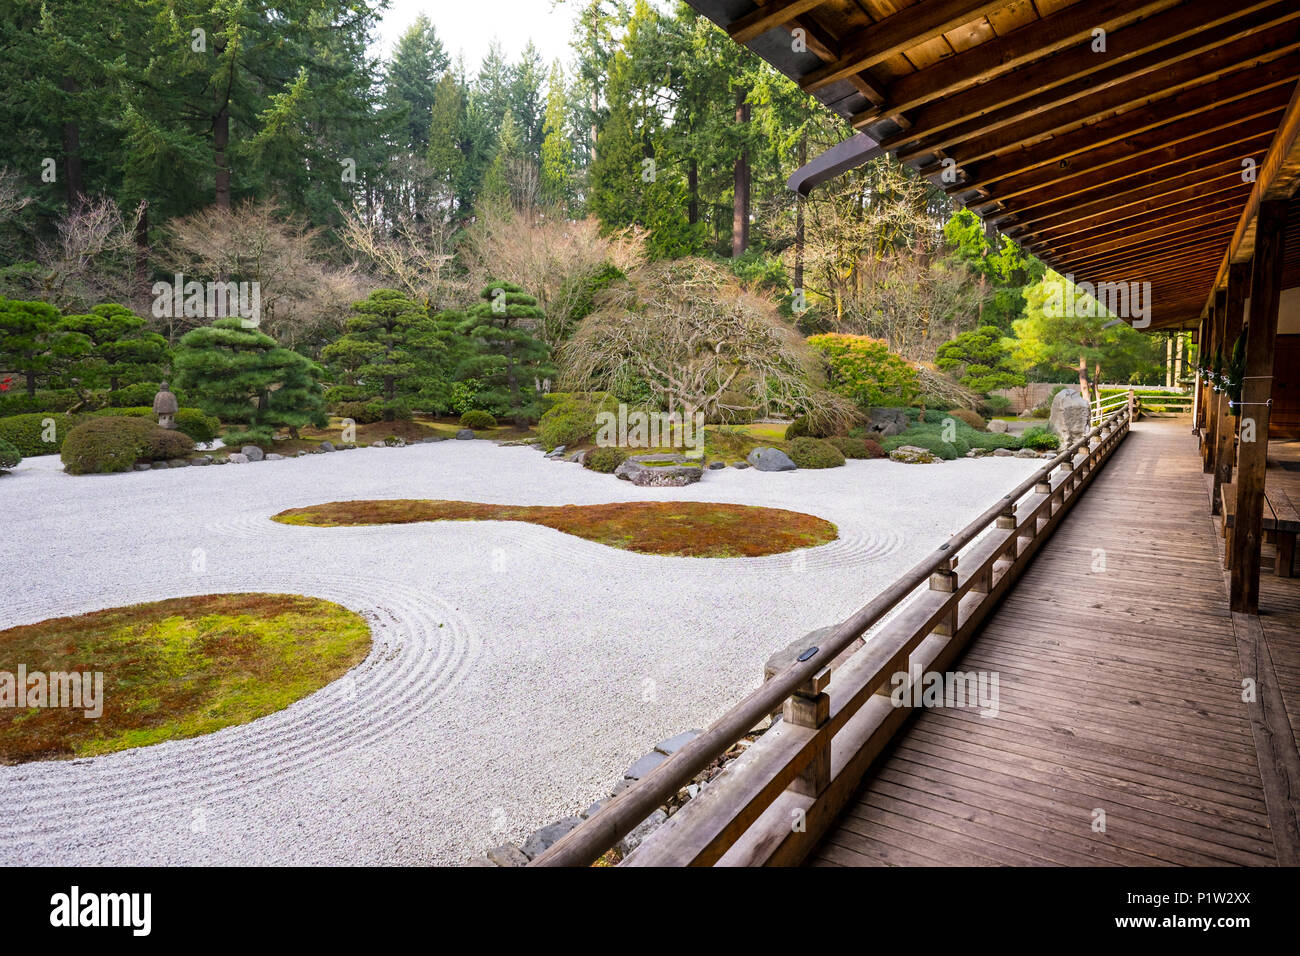 Japanese Building With Wooden Porch And Rock Garden.